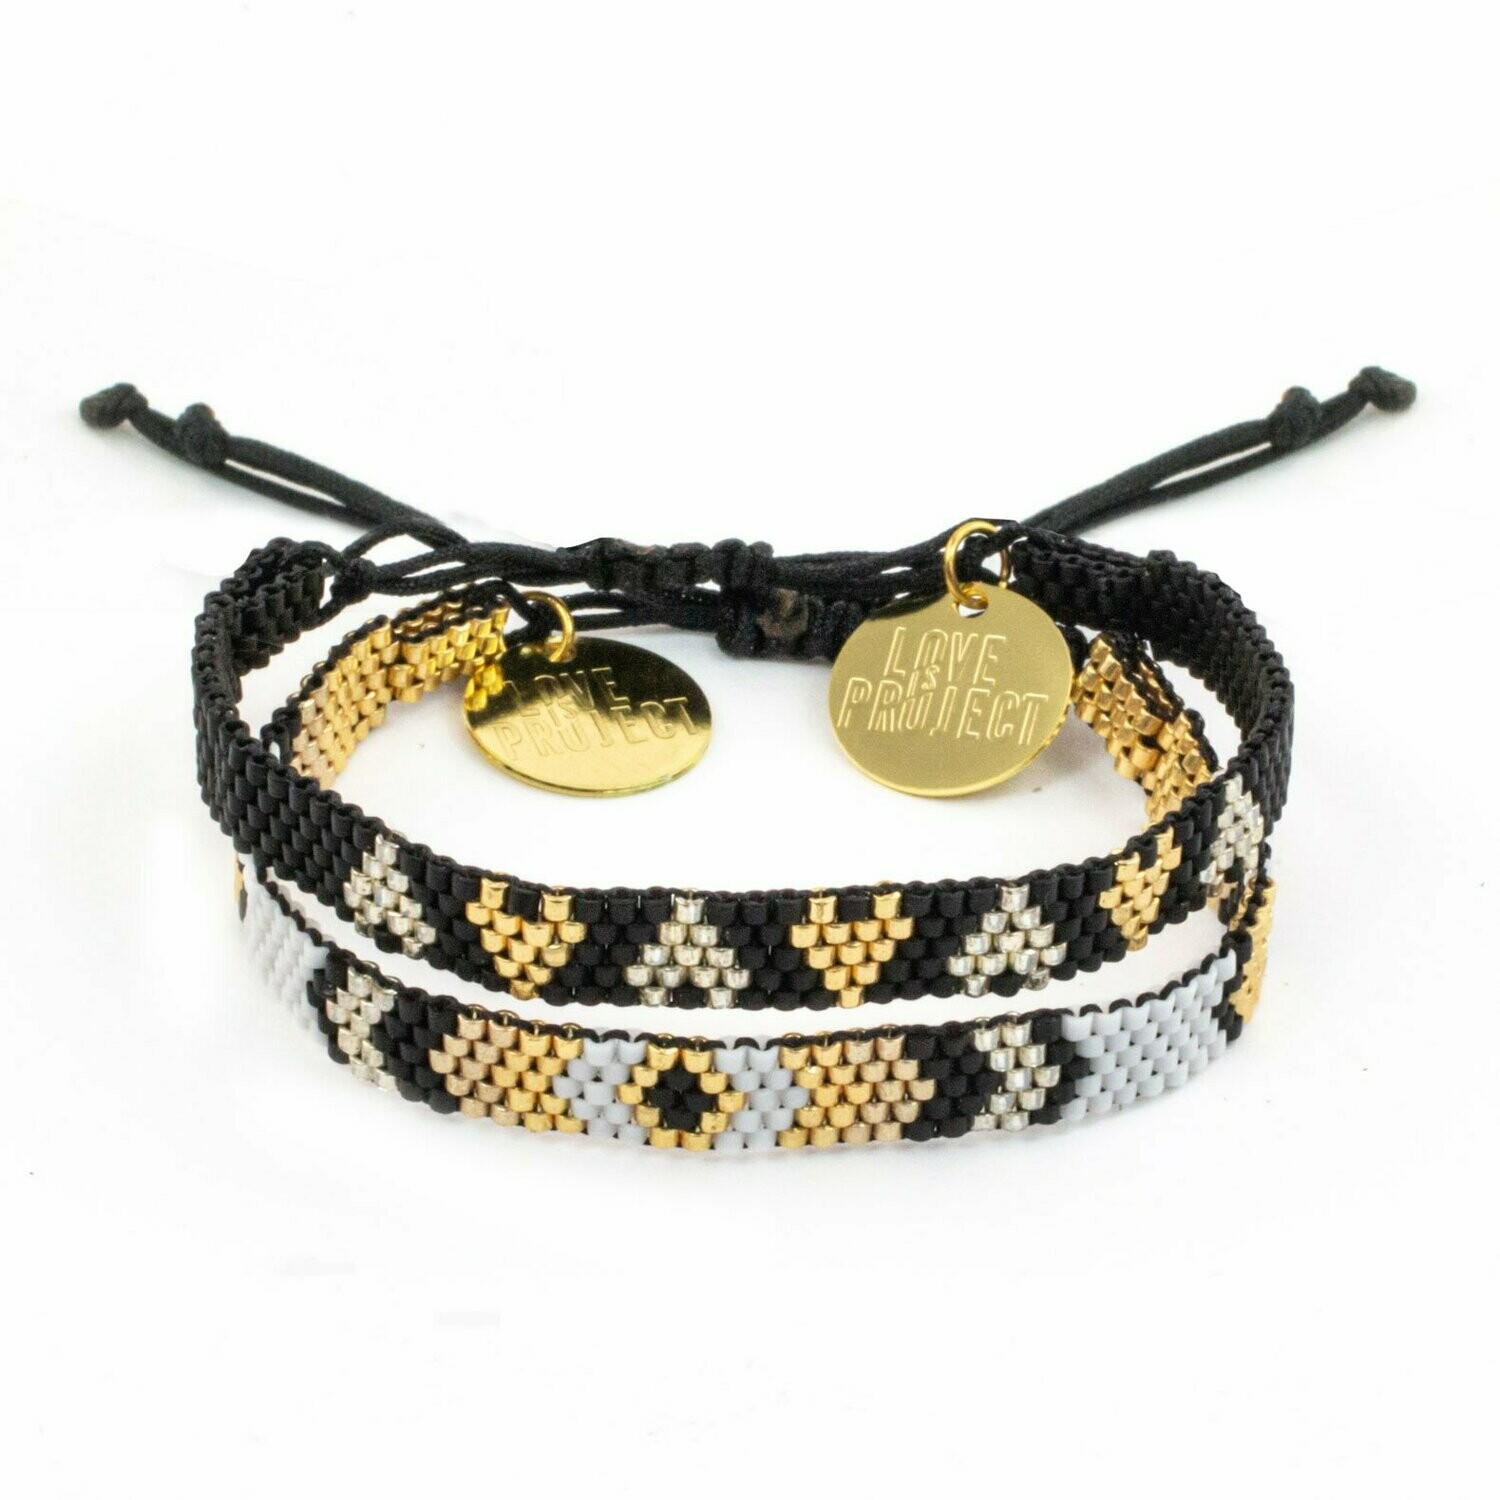 Love is Project Chaquira Bracelet Set of 2 - Black/Gold